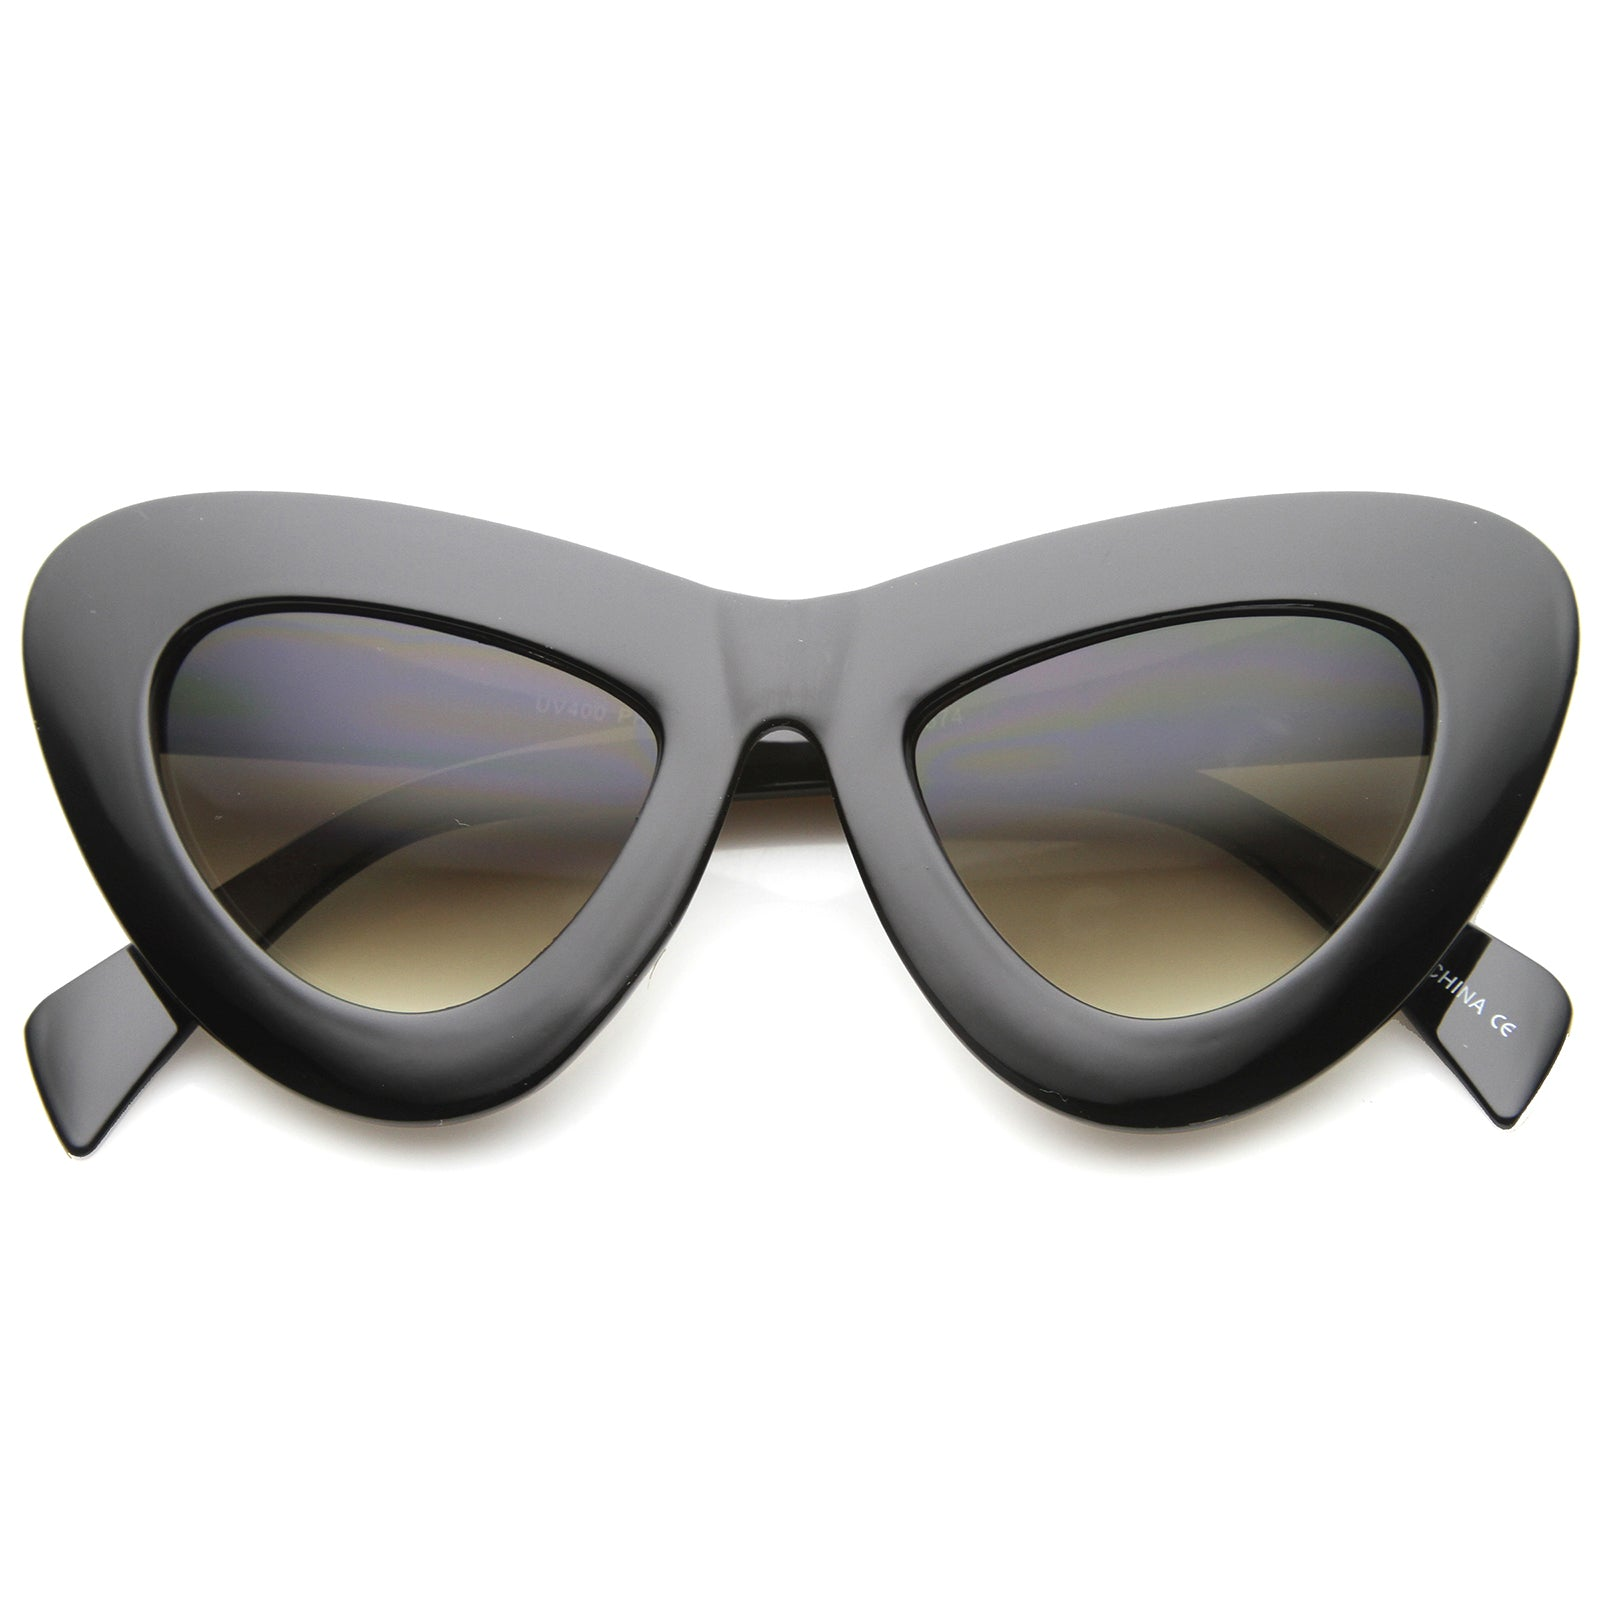 Womens Cat Eye Sunglasses With UV400 Protected Composite Lens - sunglass.la - 1